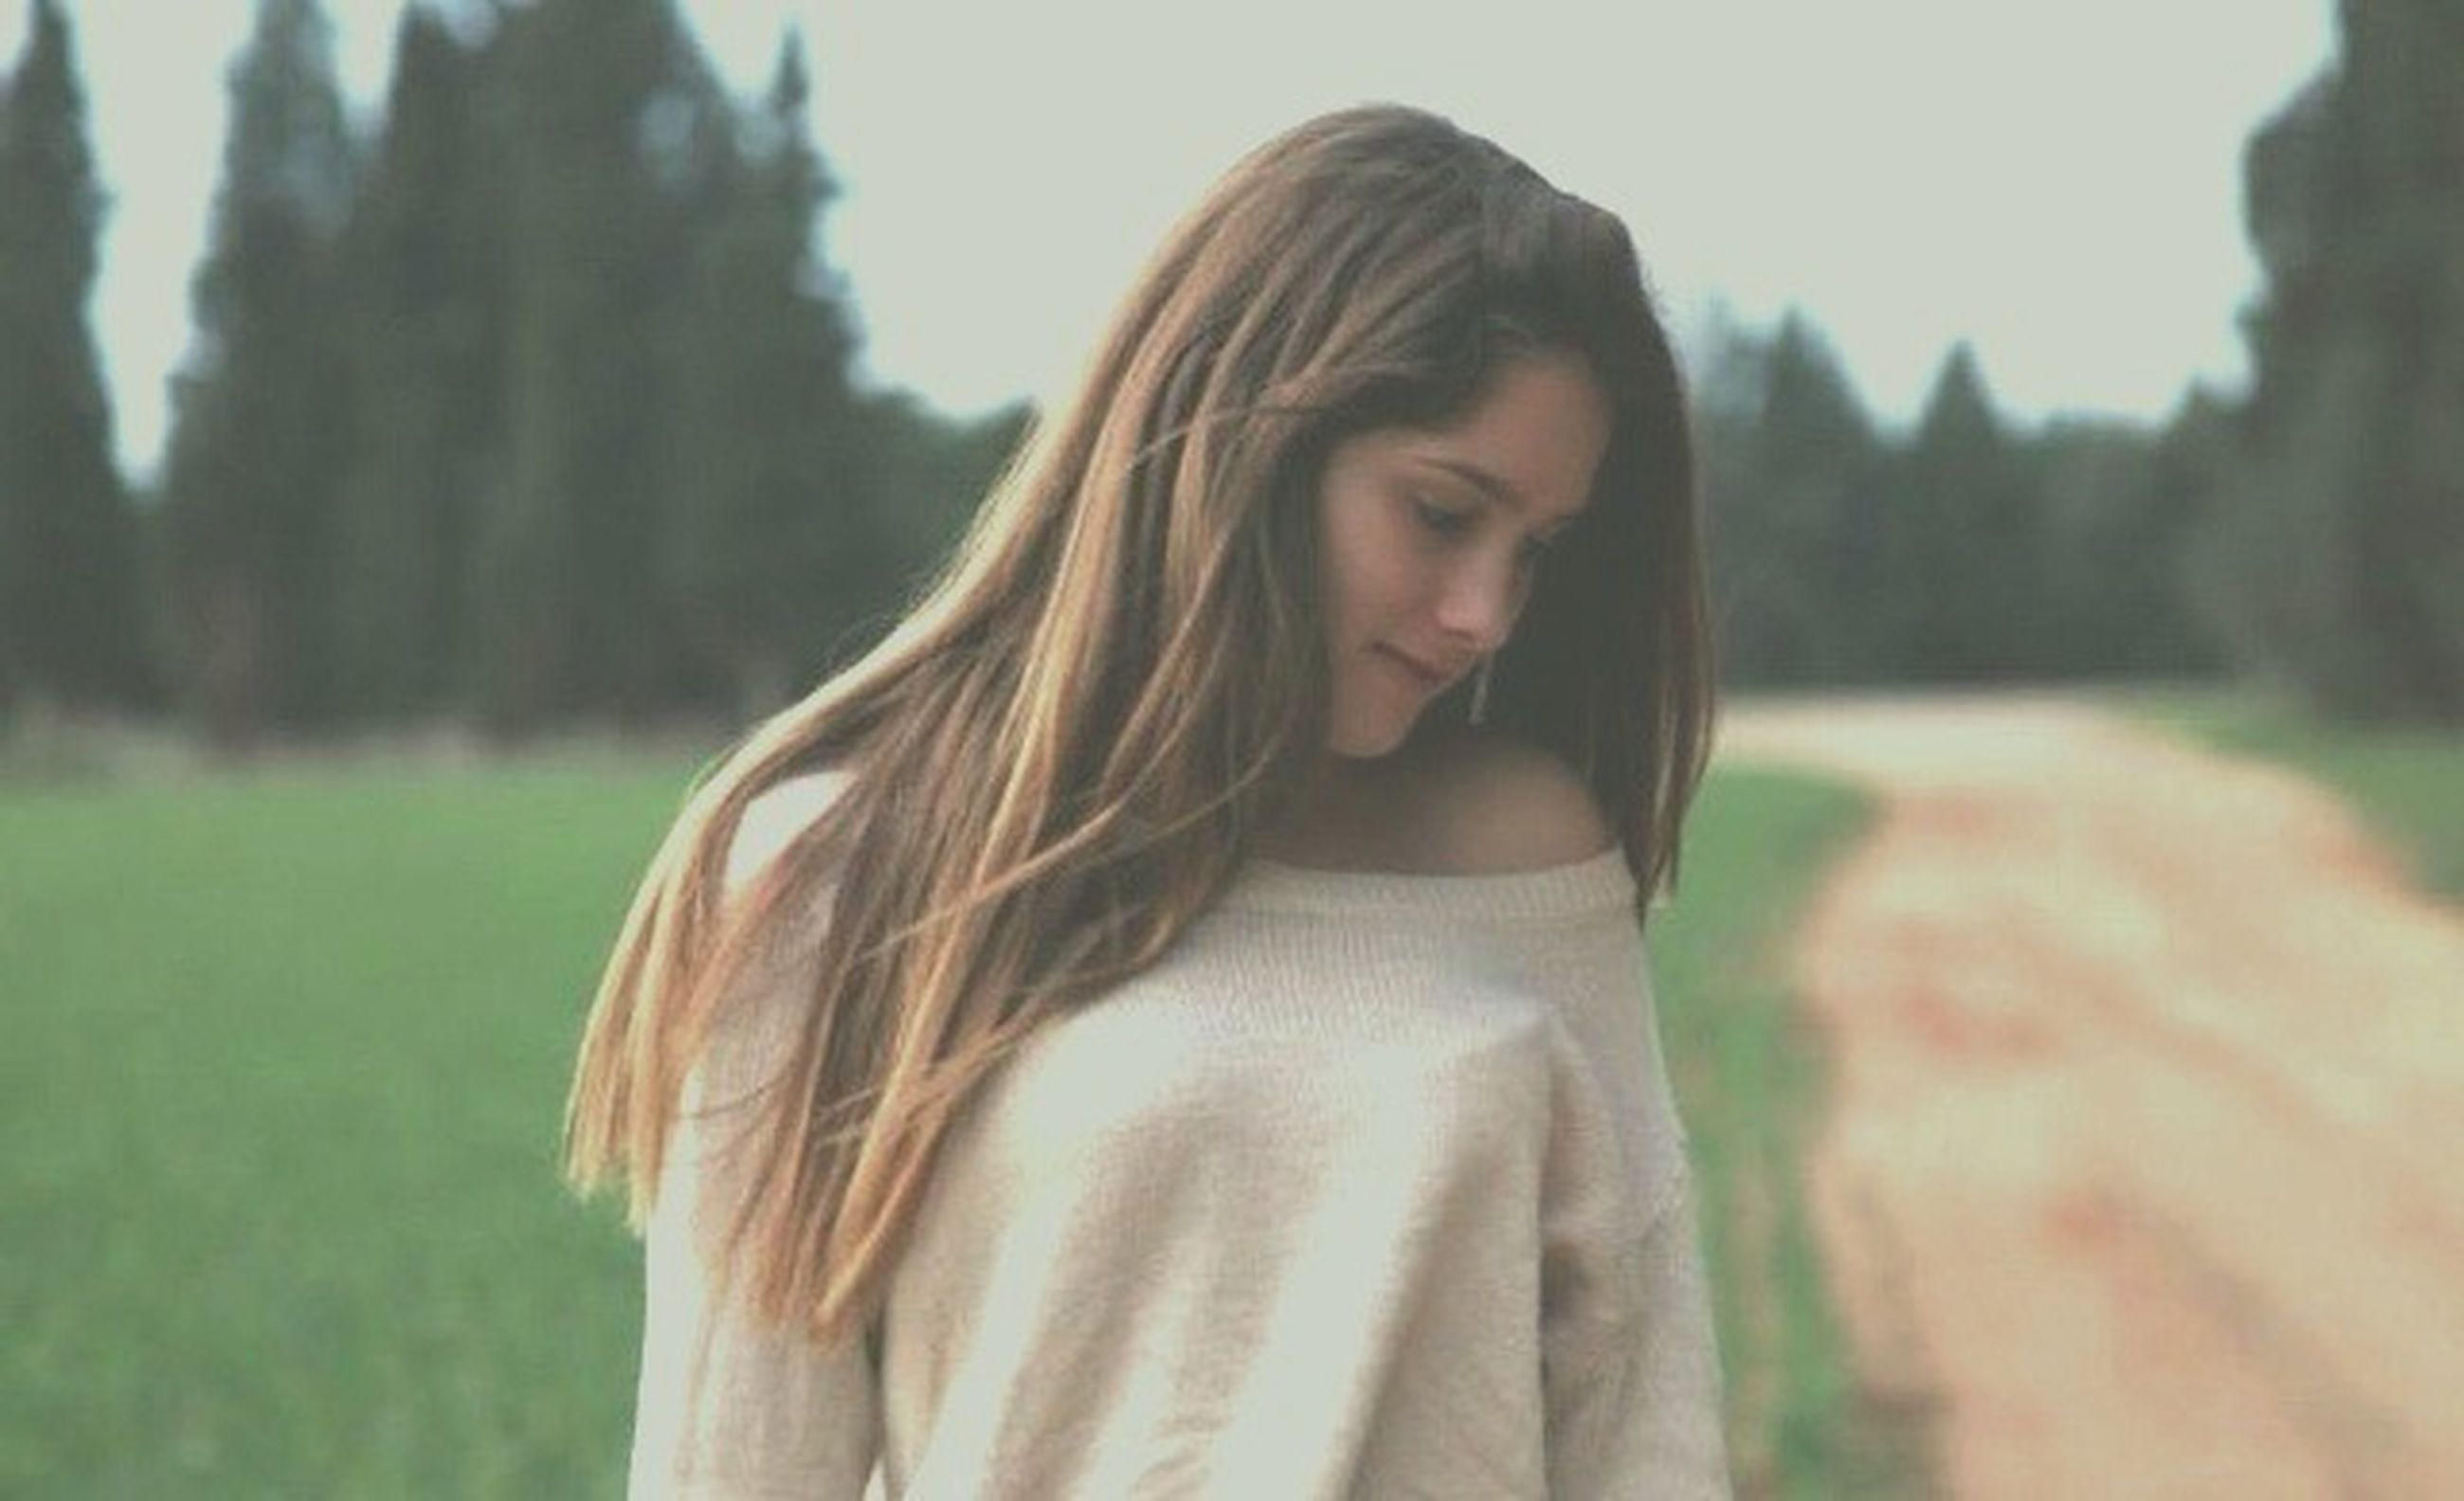 young adult, long hair, young women, person, focus on foreground, lifestyles, leisure activity, casual clothing, portrait, front view, looking at camera, waist up, brown hair, headshot, standing, smiling, medium-length hair